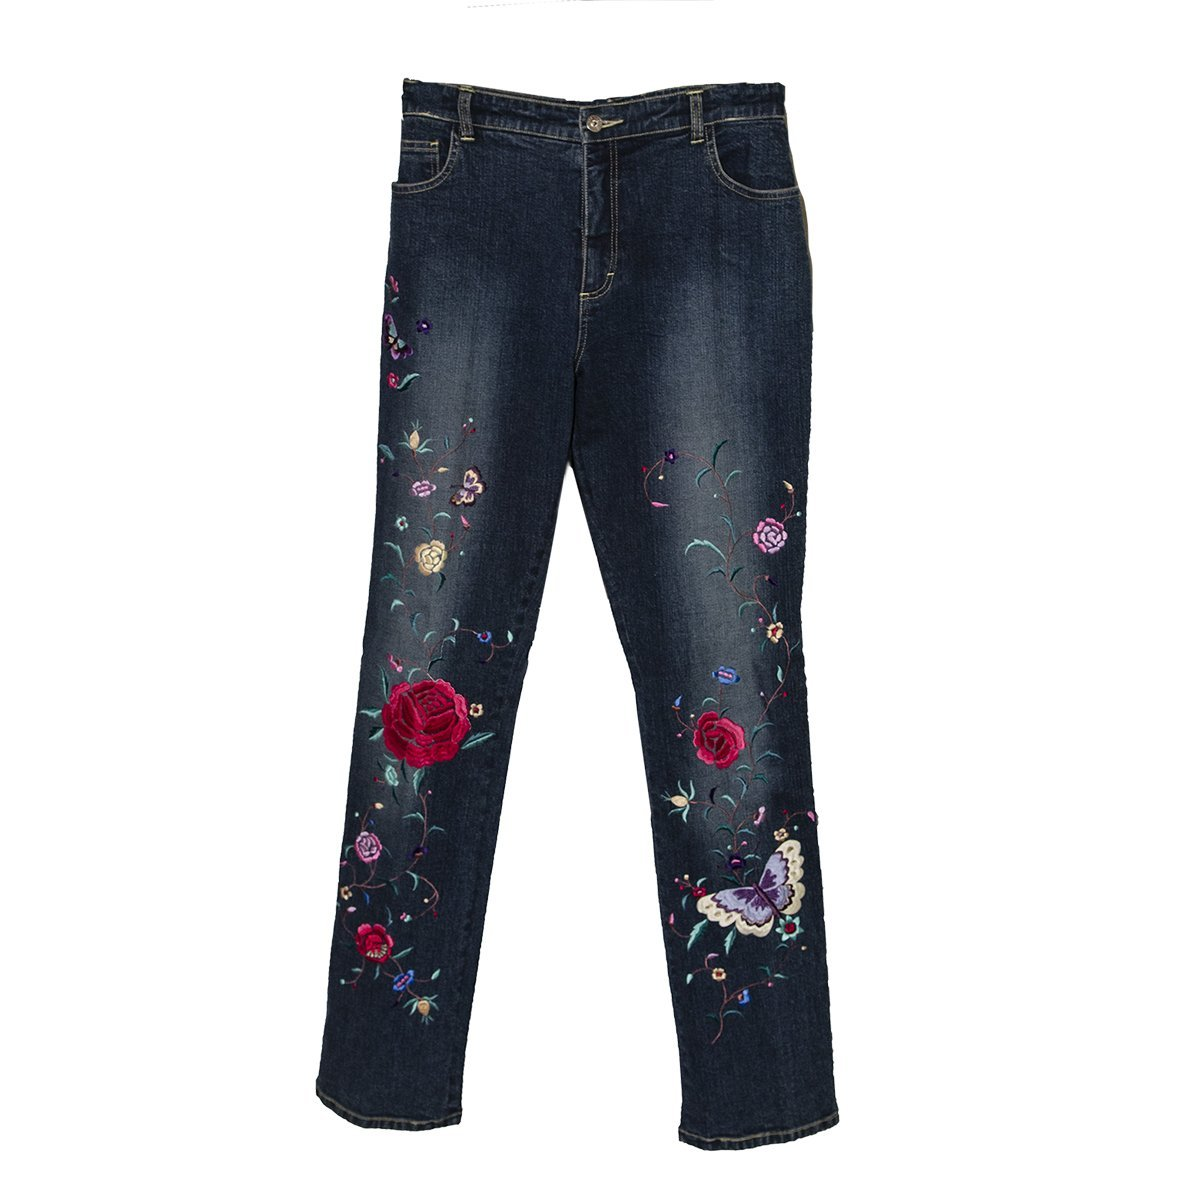 Embroidered Denim Jeans by Ricci Andrist, Size Small